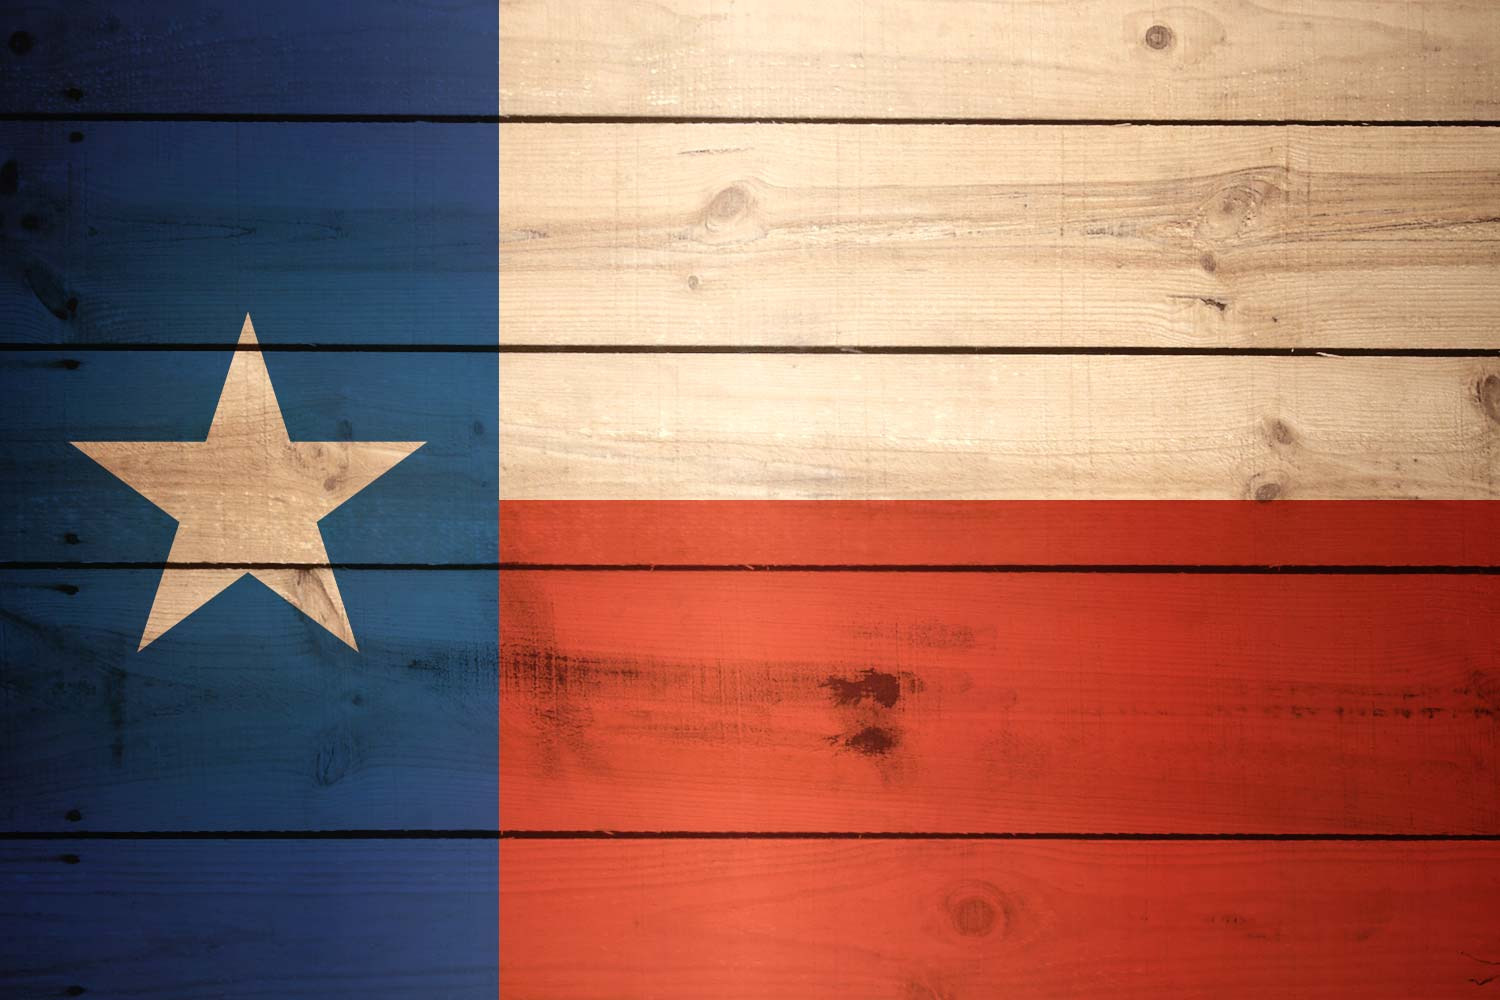 texas statehood day